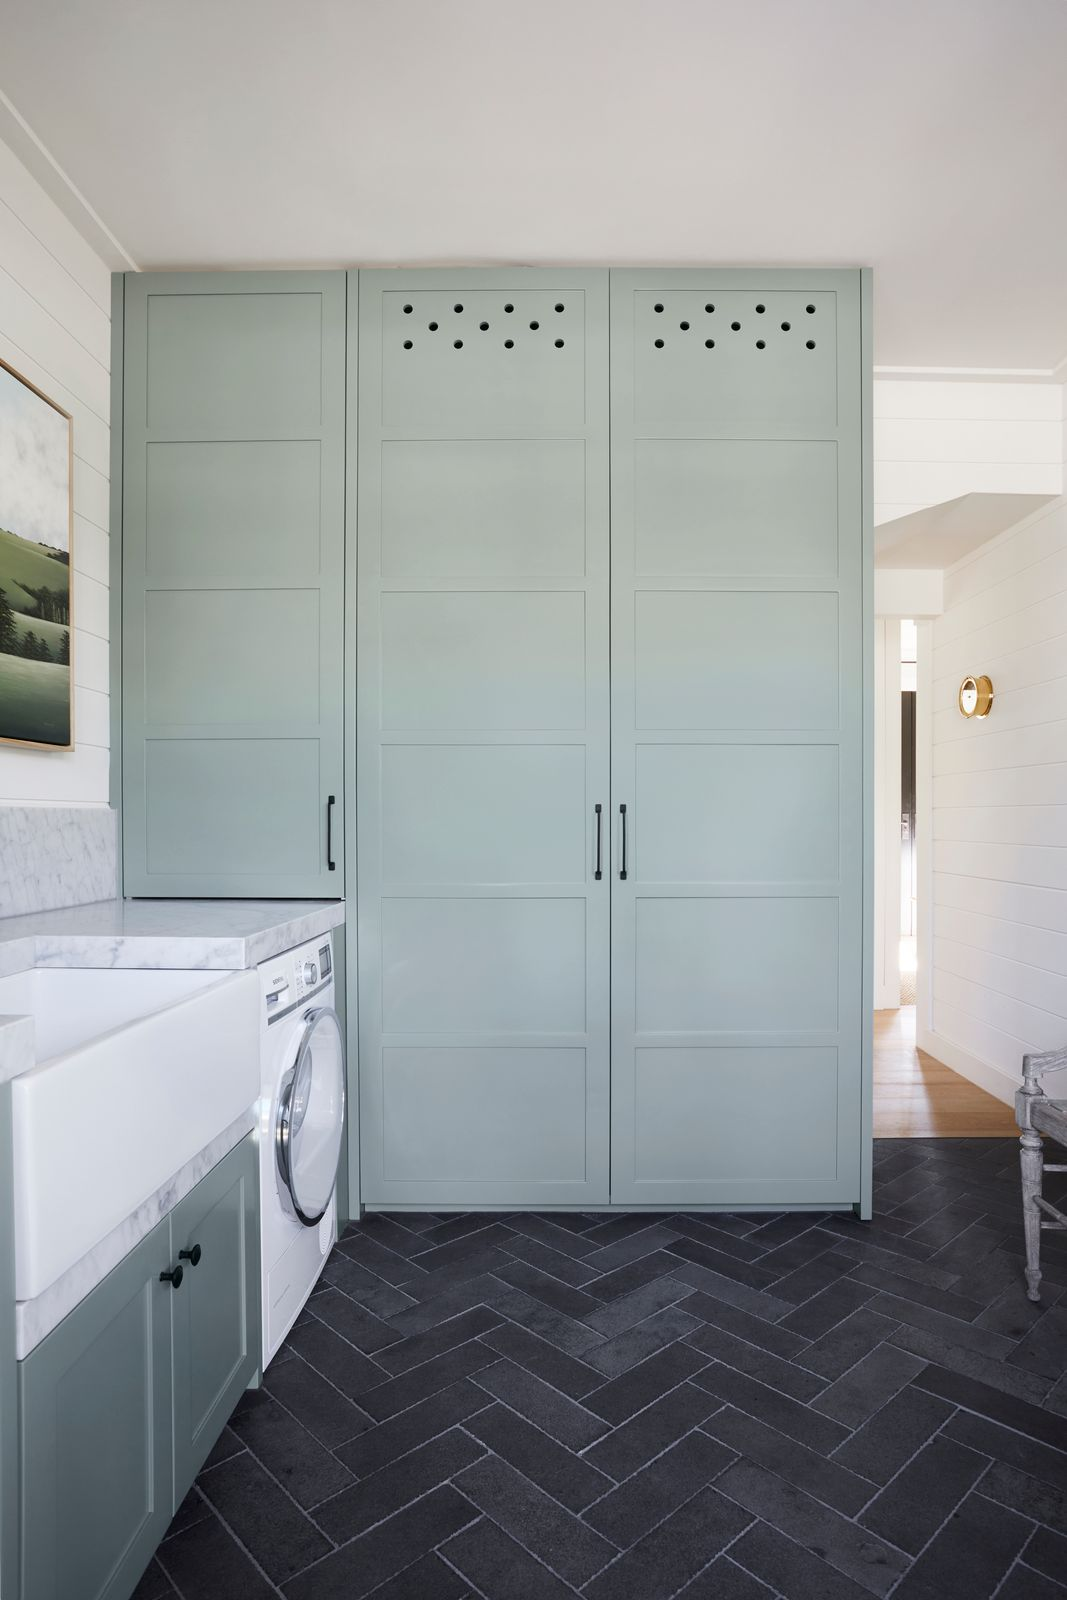 Green cabinetry in sage green and marble laundry